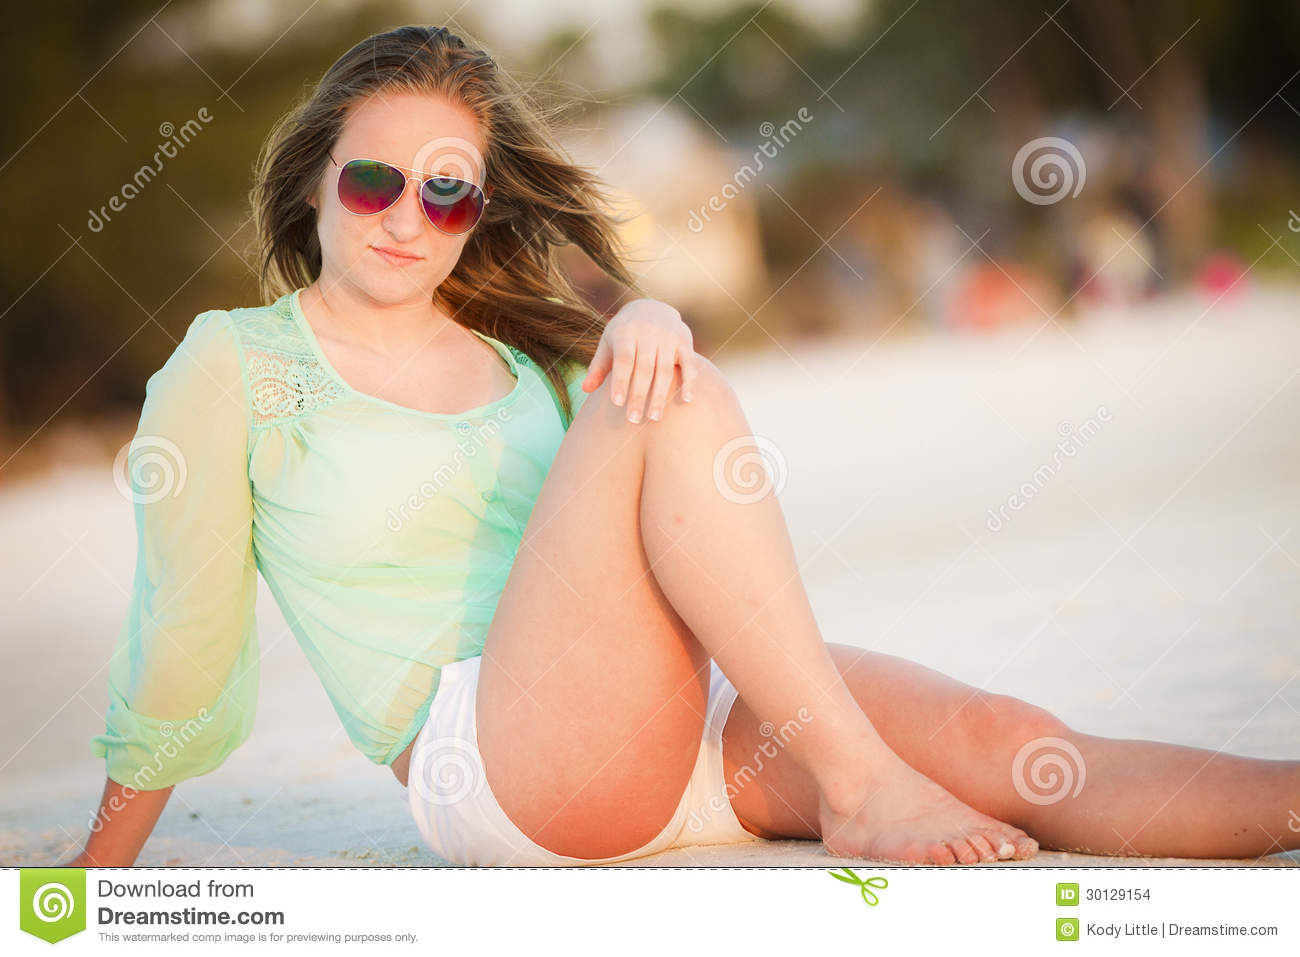 young teen girl enjoying paradise while laying on the beach.